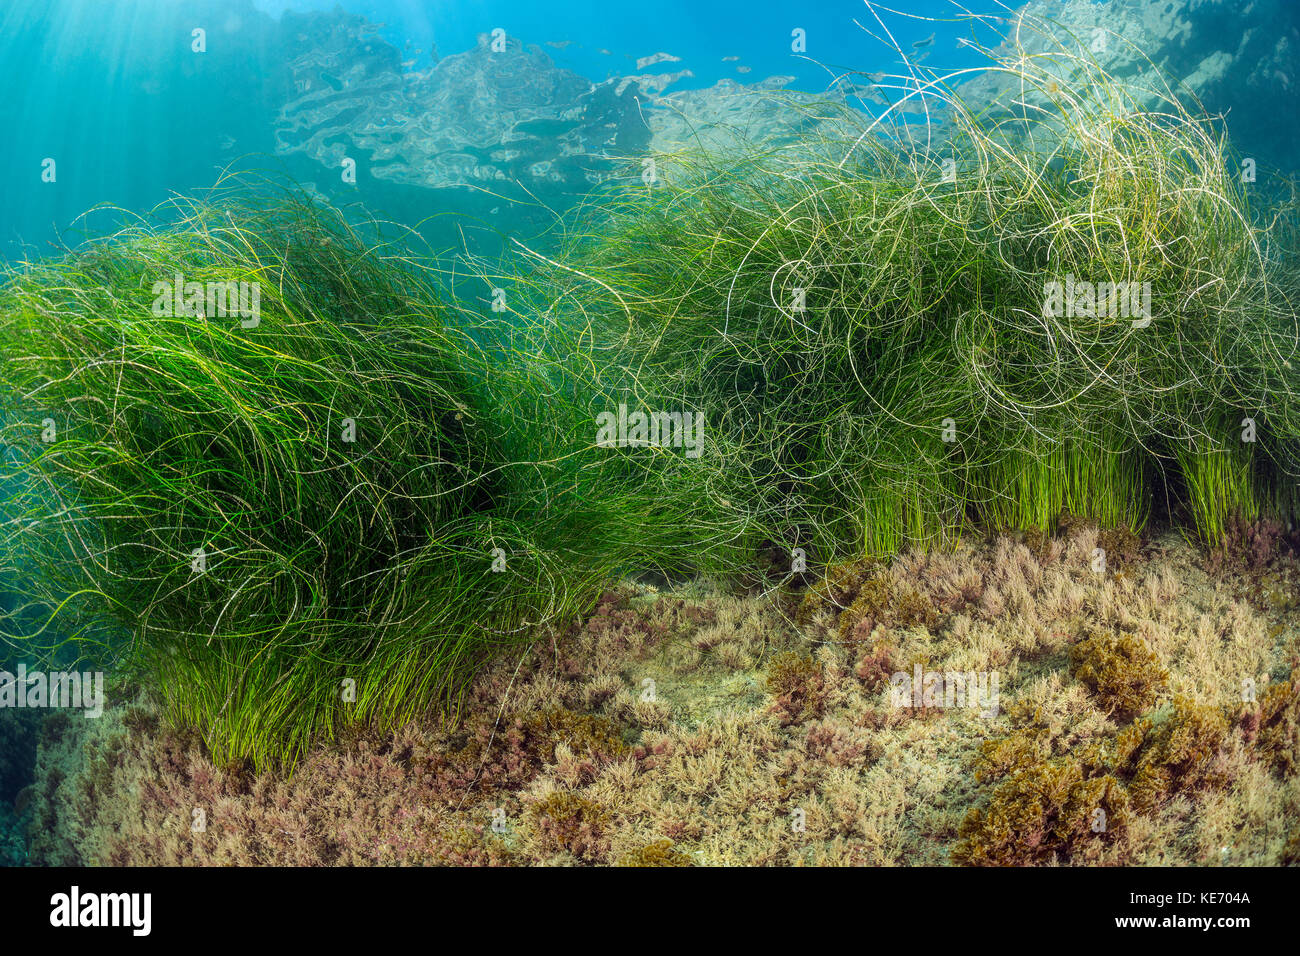 Surfgrass, Phyllospadix sp., Catalina Island, California, USA - Stock Image